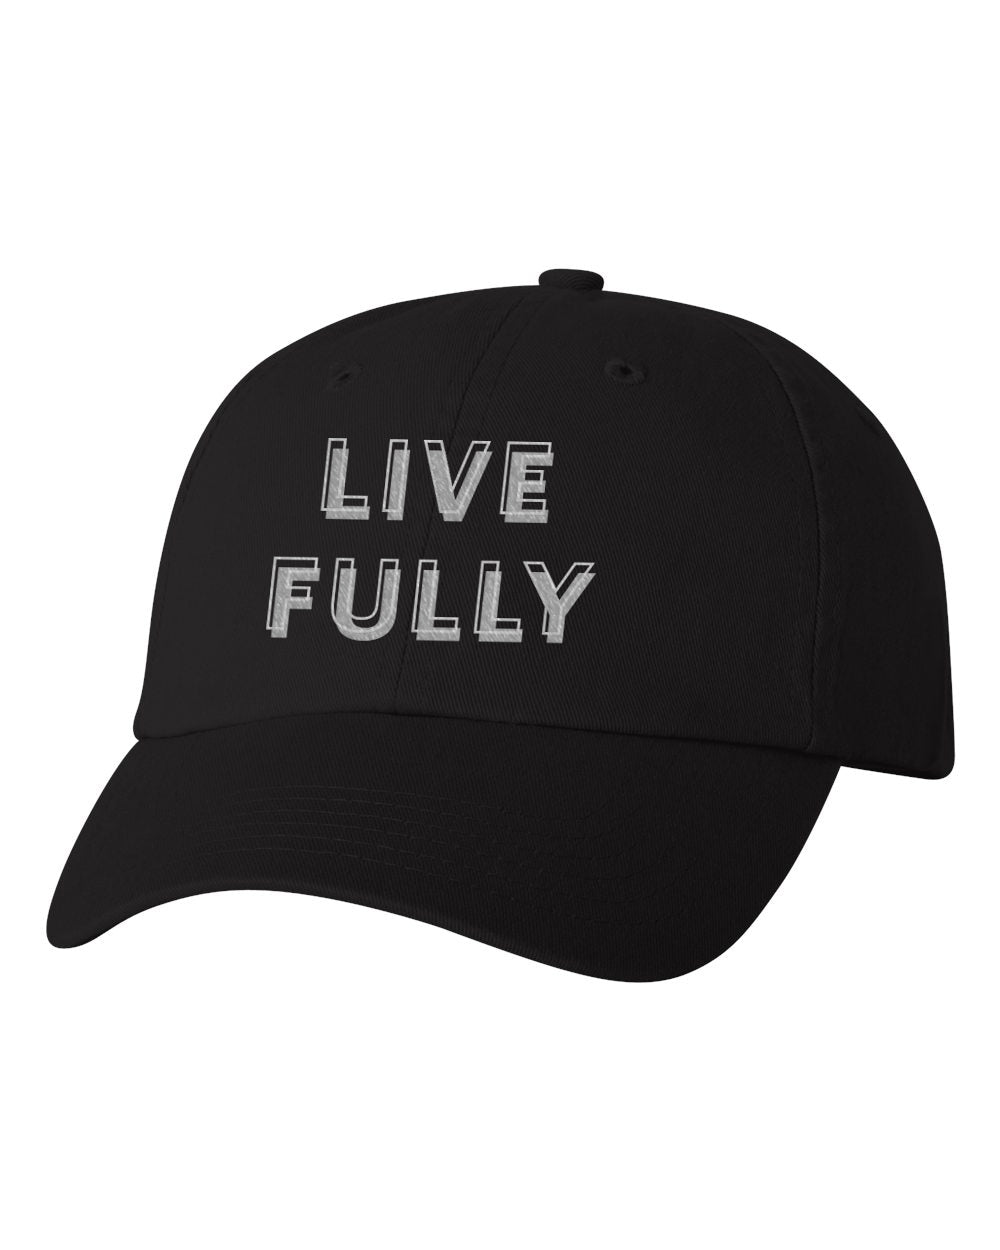 Live Fully - Unisex Dad Cap - Black